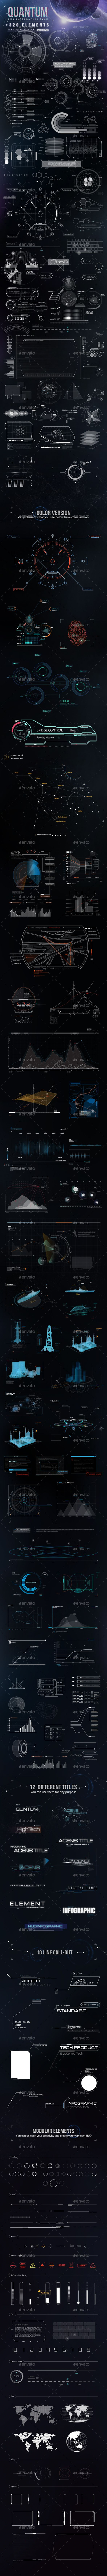 quantum hud infographic infographic filing and sci fi